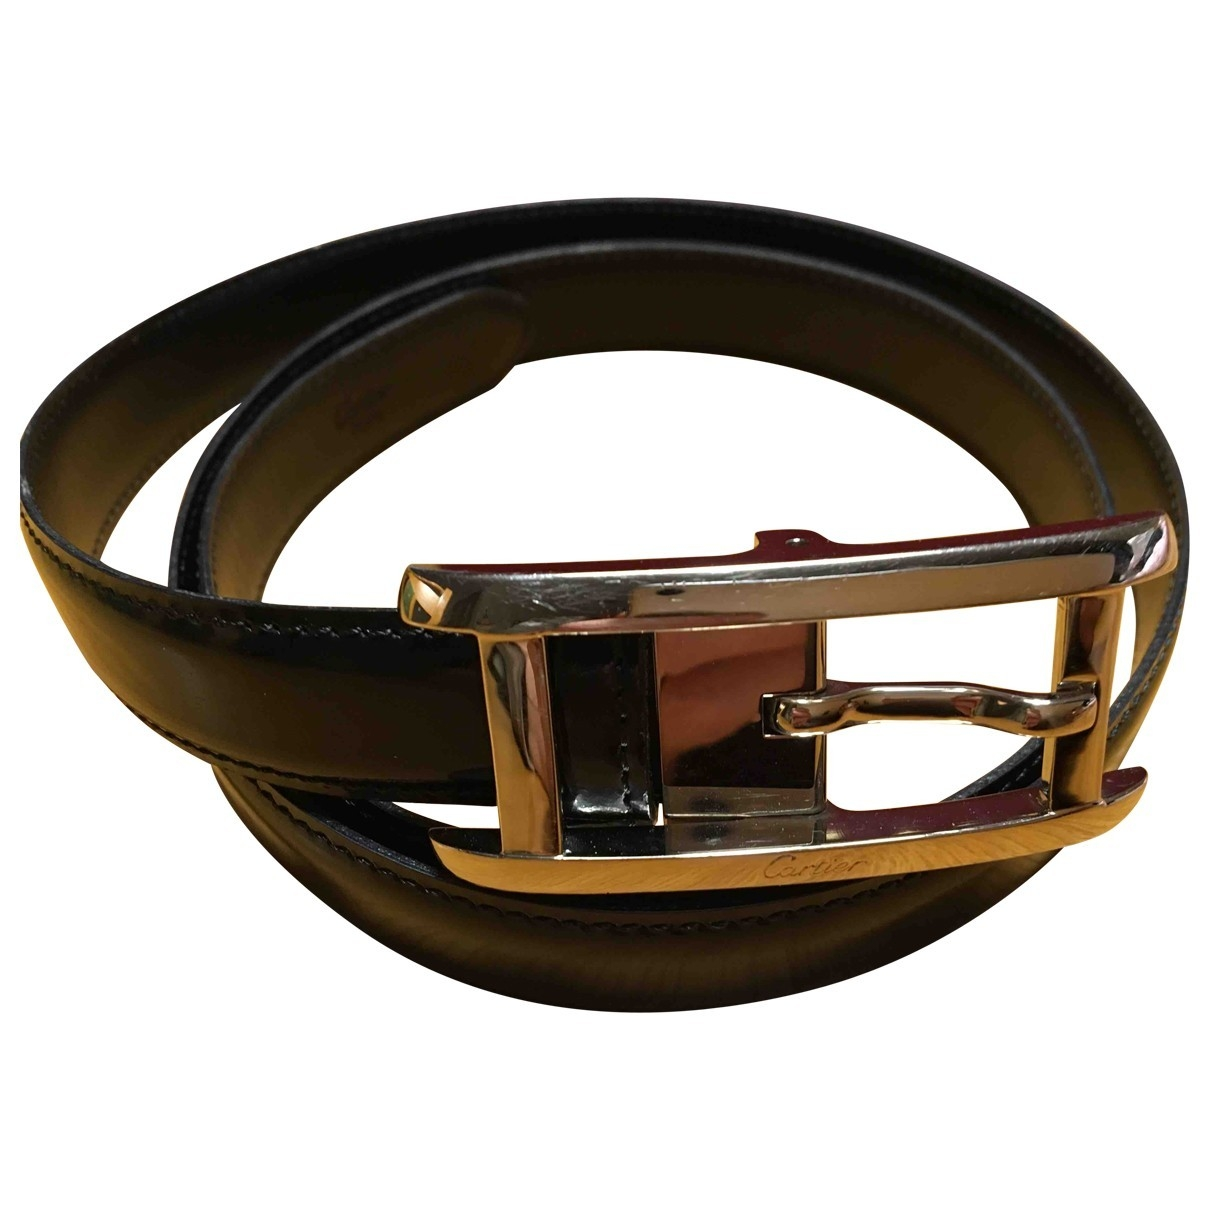 Cartier \N Black Patent leather belt for Women 85 cm